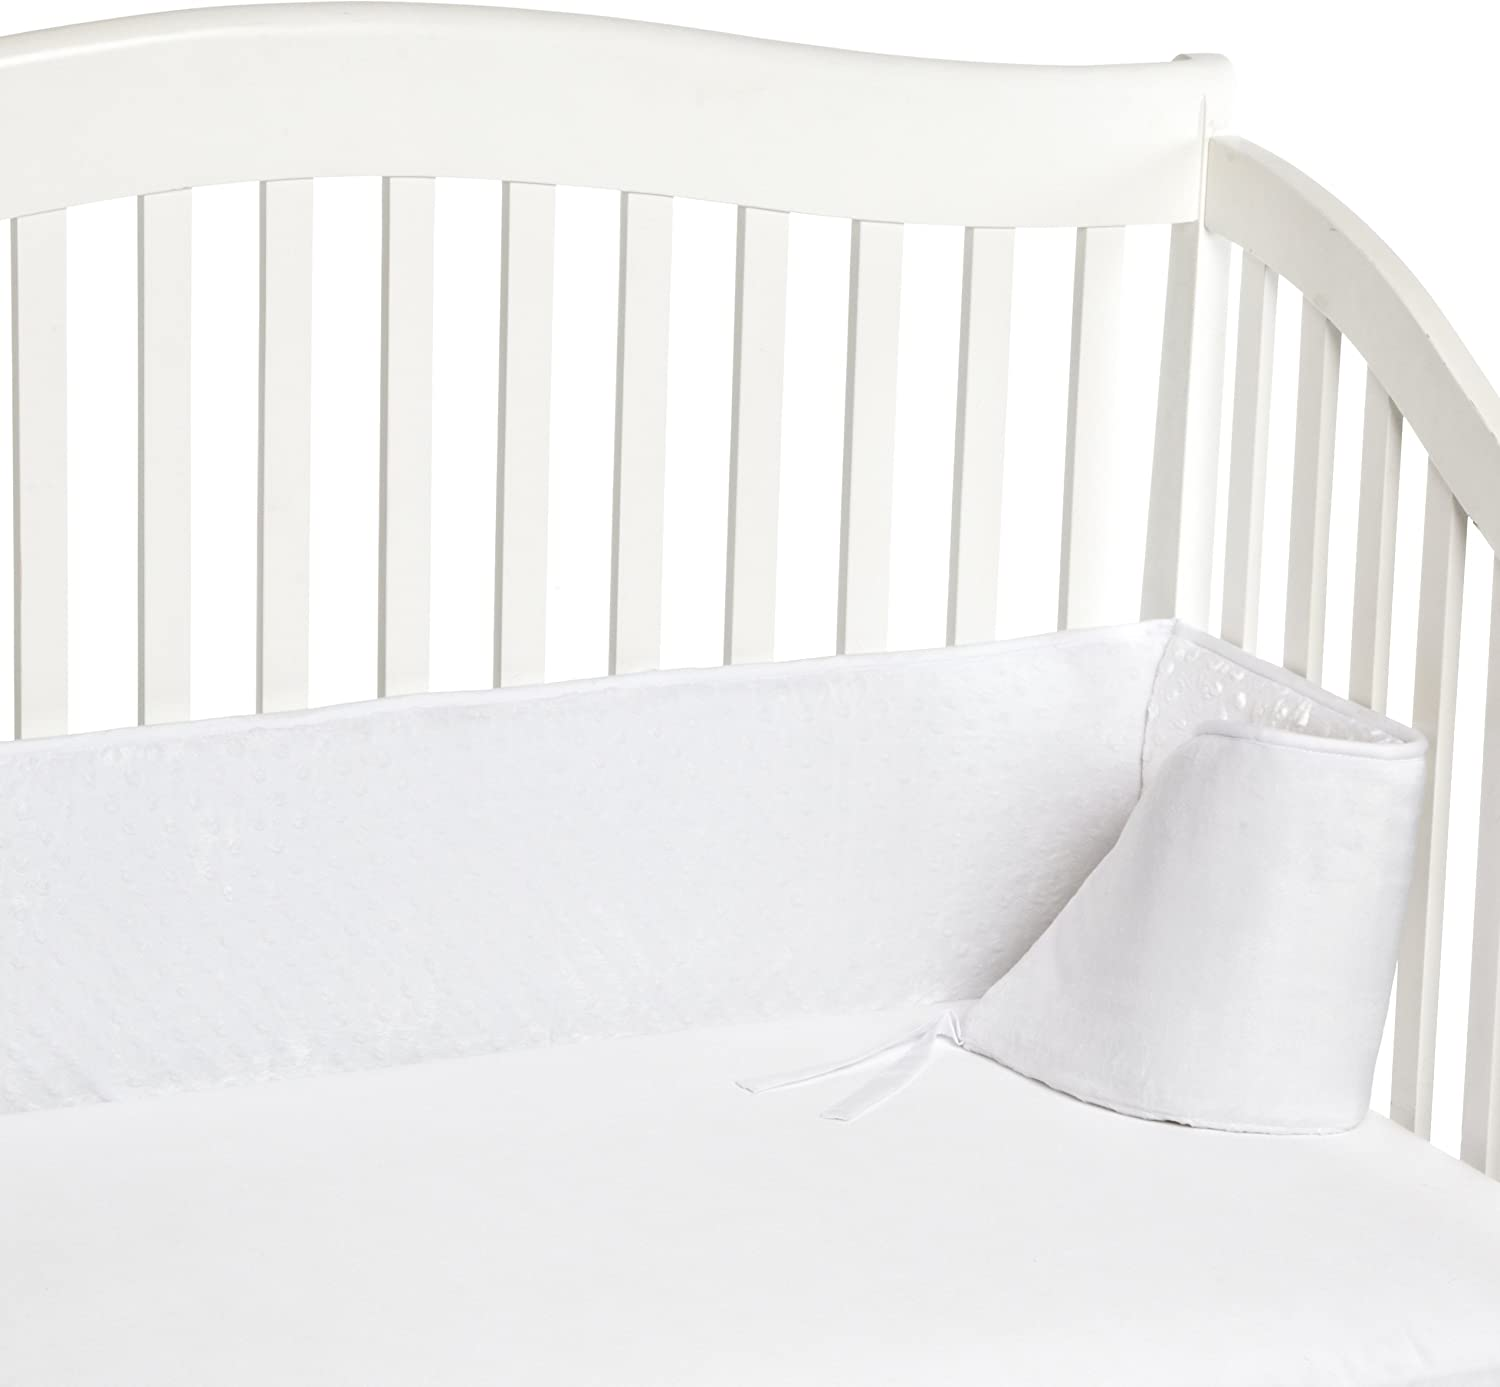 skirt orange comfy safe size ideas oliver cribs ventilated chic bumpers full alternatives bedroom bed and choice r pads accessories whine the of b baby a s crib for bumper